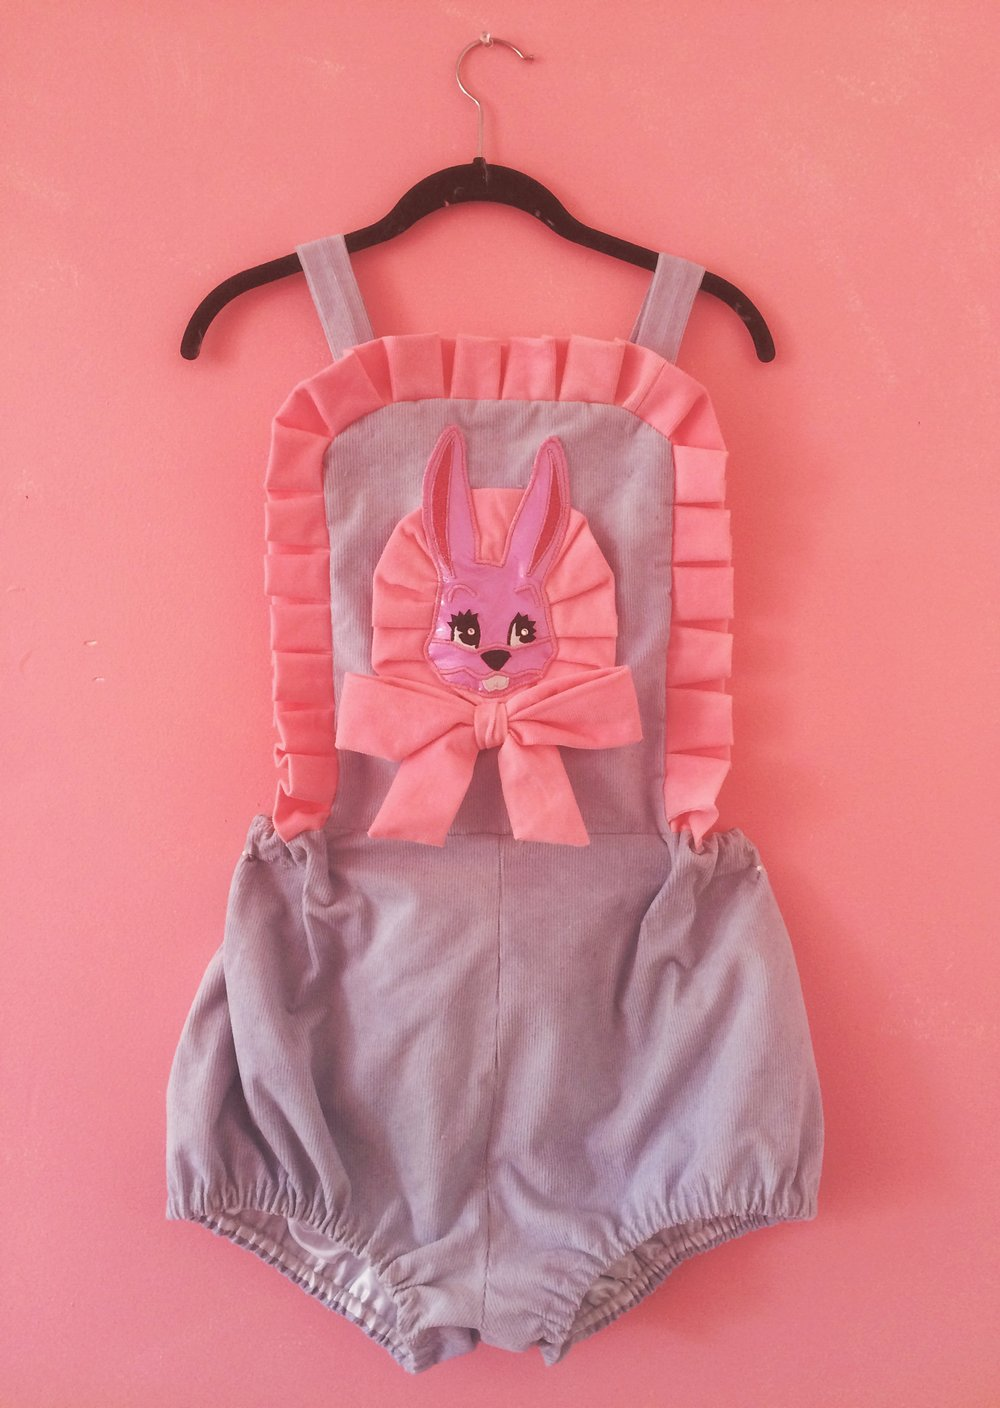 2016 Hand Dyed Corduroy Bunny Applique Romper (custom order)